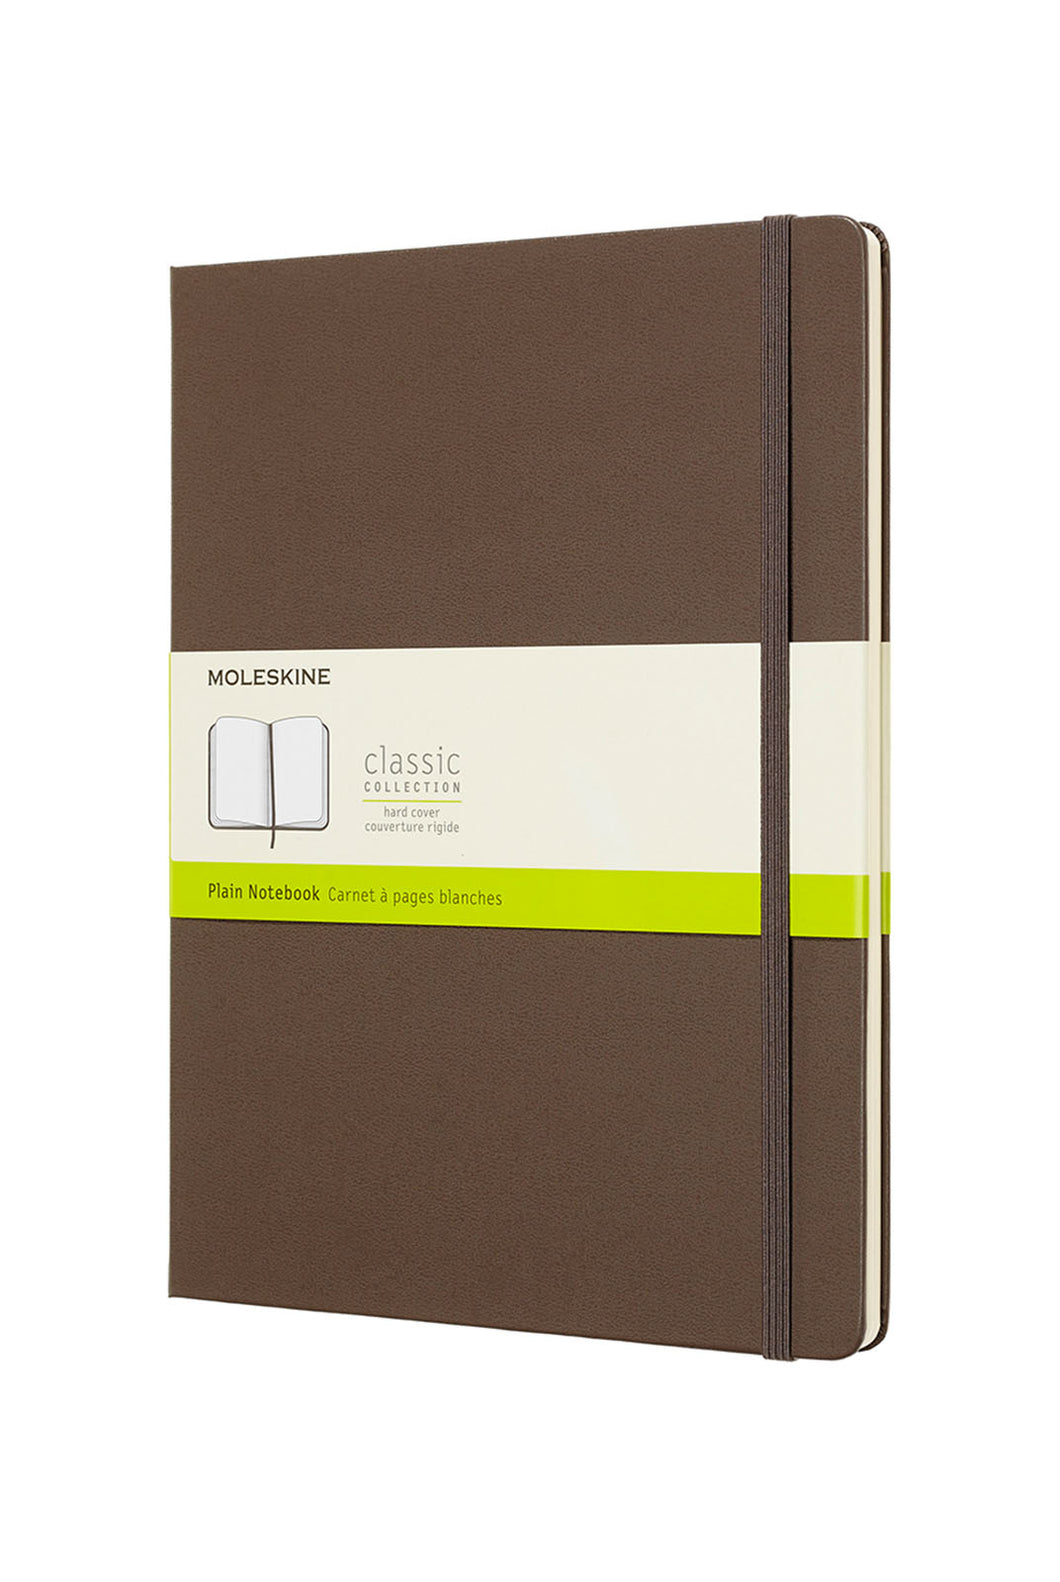 Moleskine - Classic Hard Cover Notebook - Plain - Extra Large (19x25cm) - Earth Brown